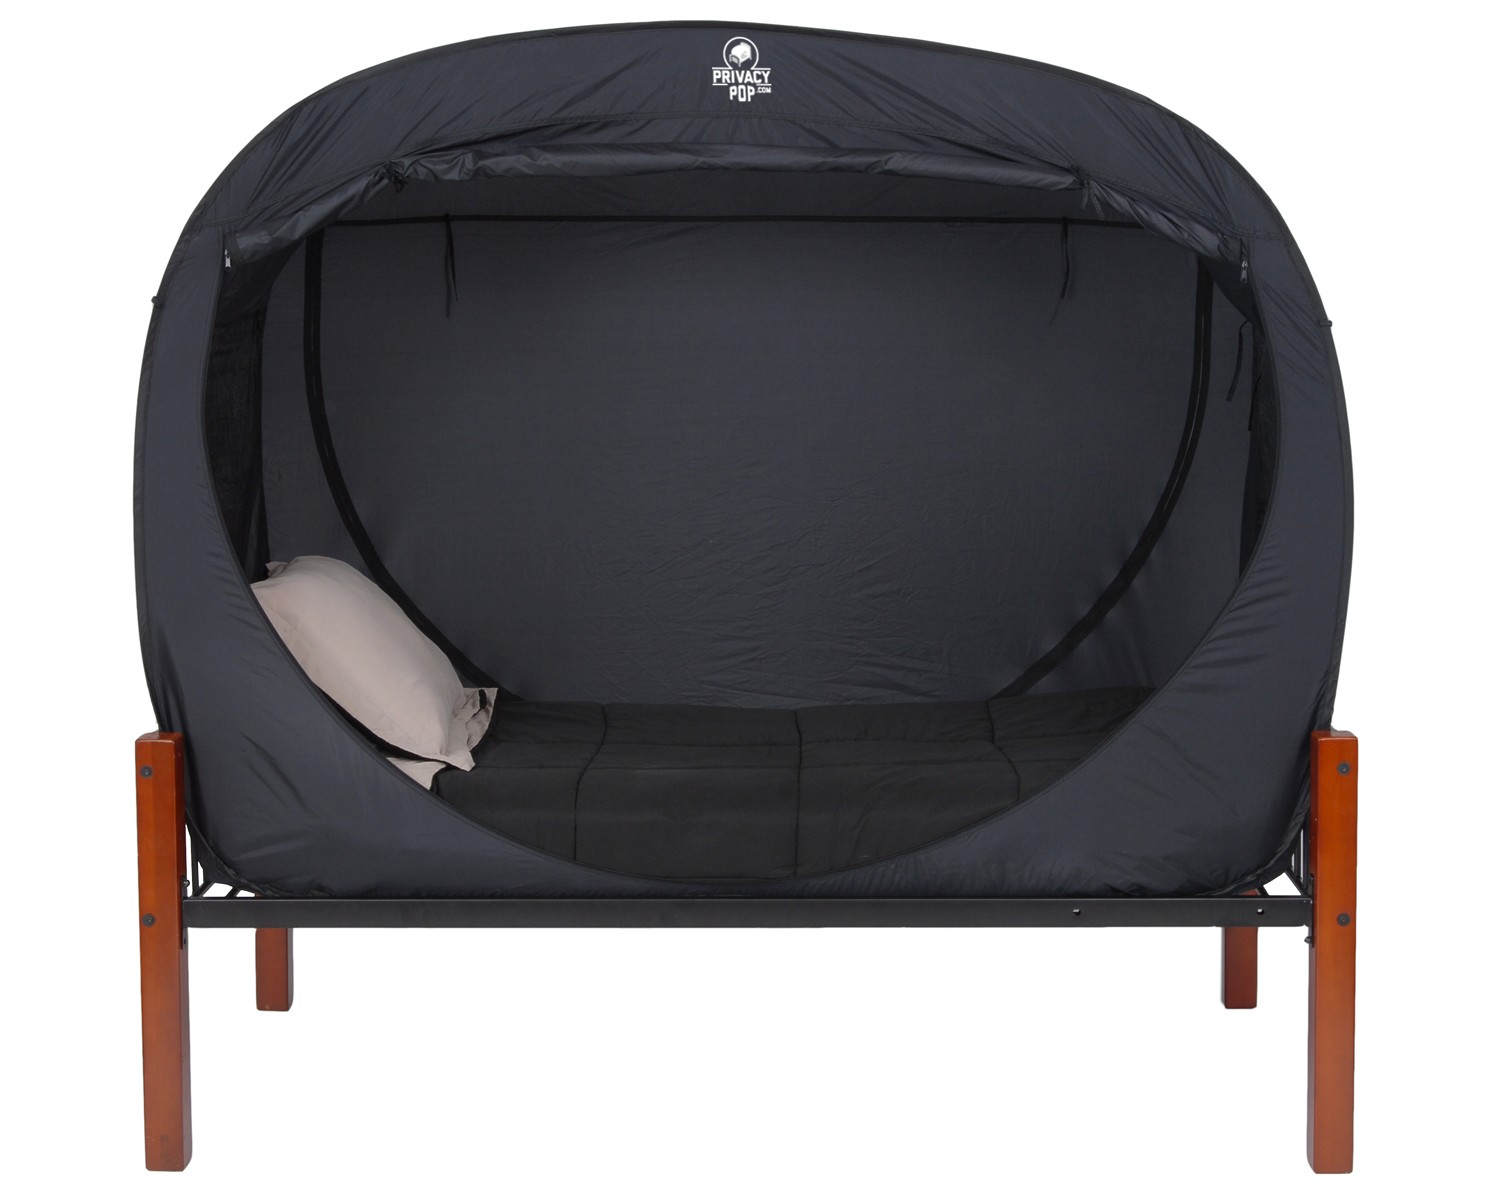 privacy pop is a tent for your bed. Black Bedroom Furniture Sets. Home Design Ideas